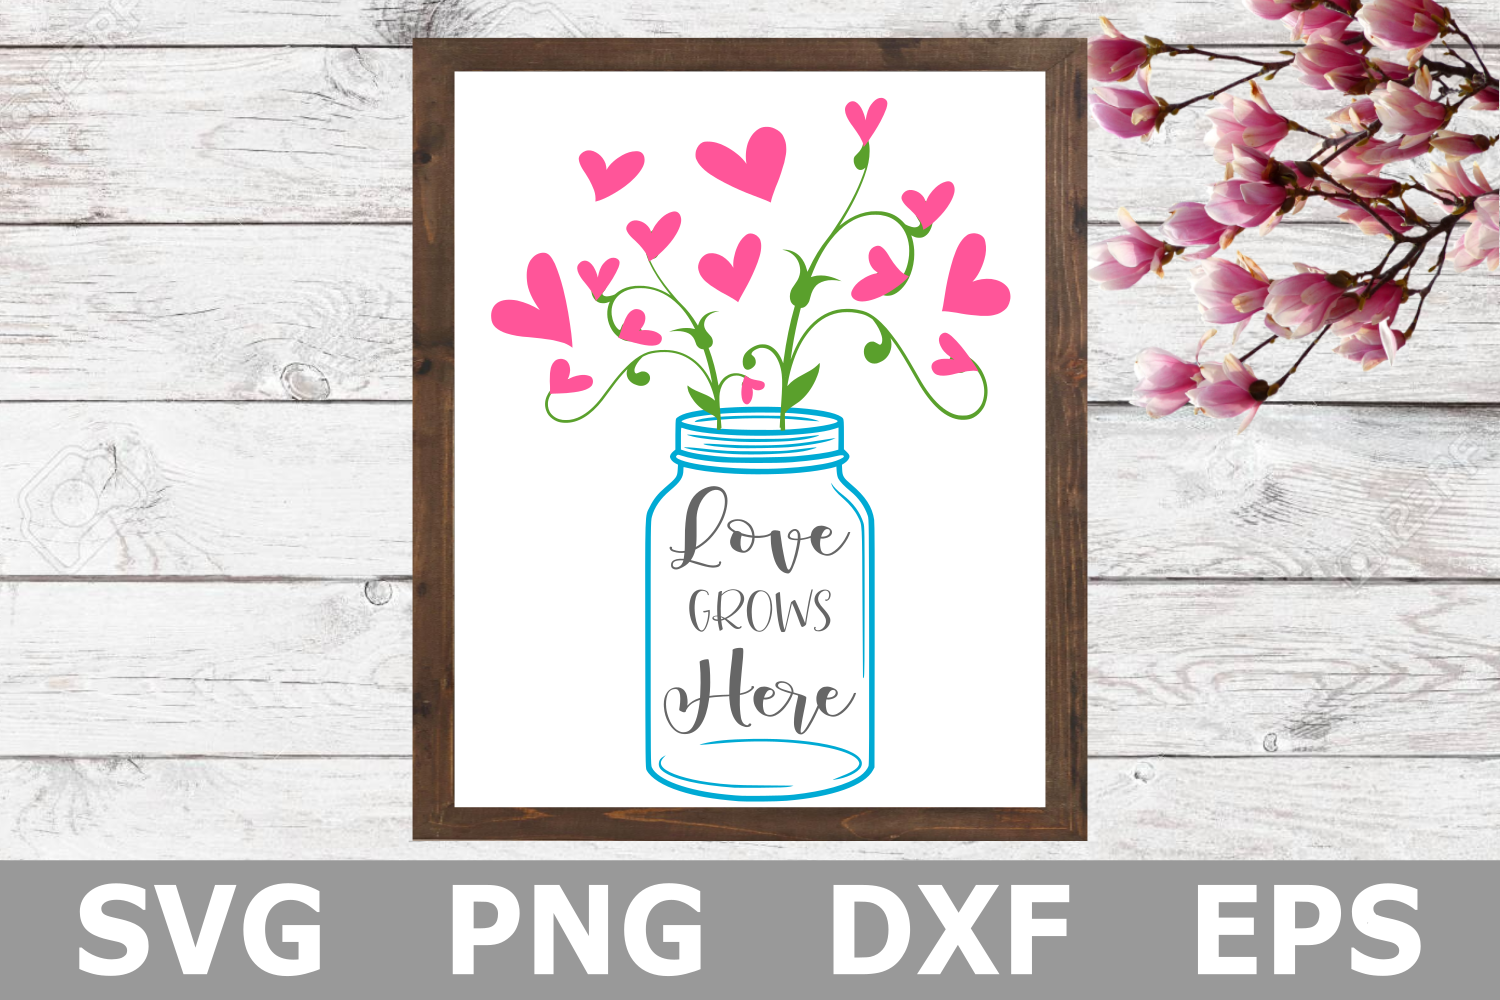 Love Grows Here - A Family SVG Cut File example image 1